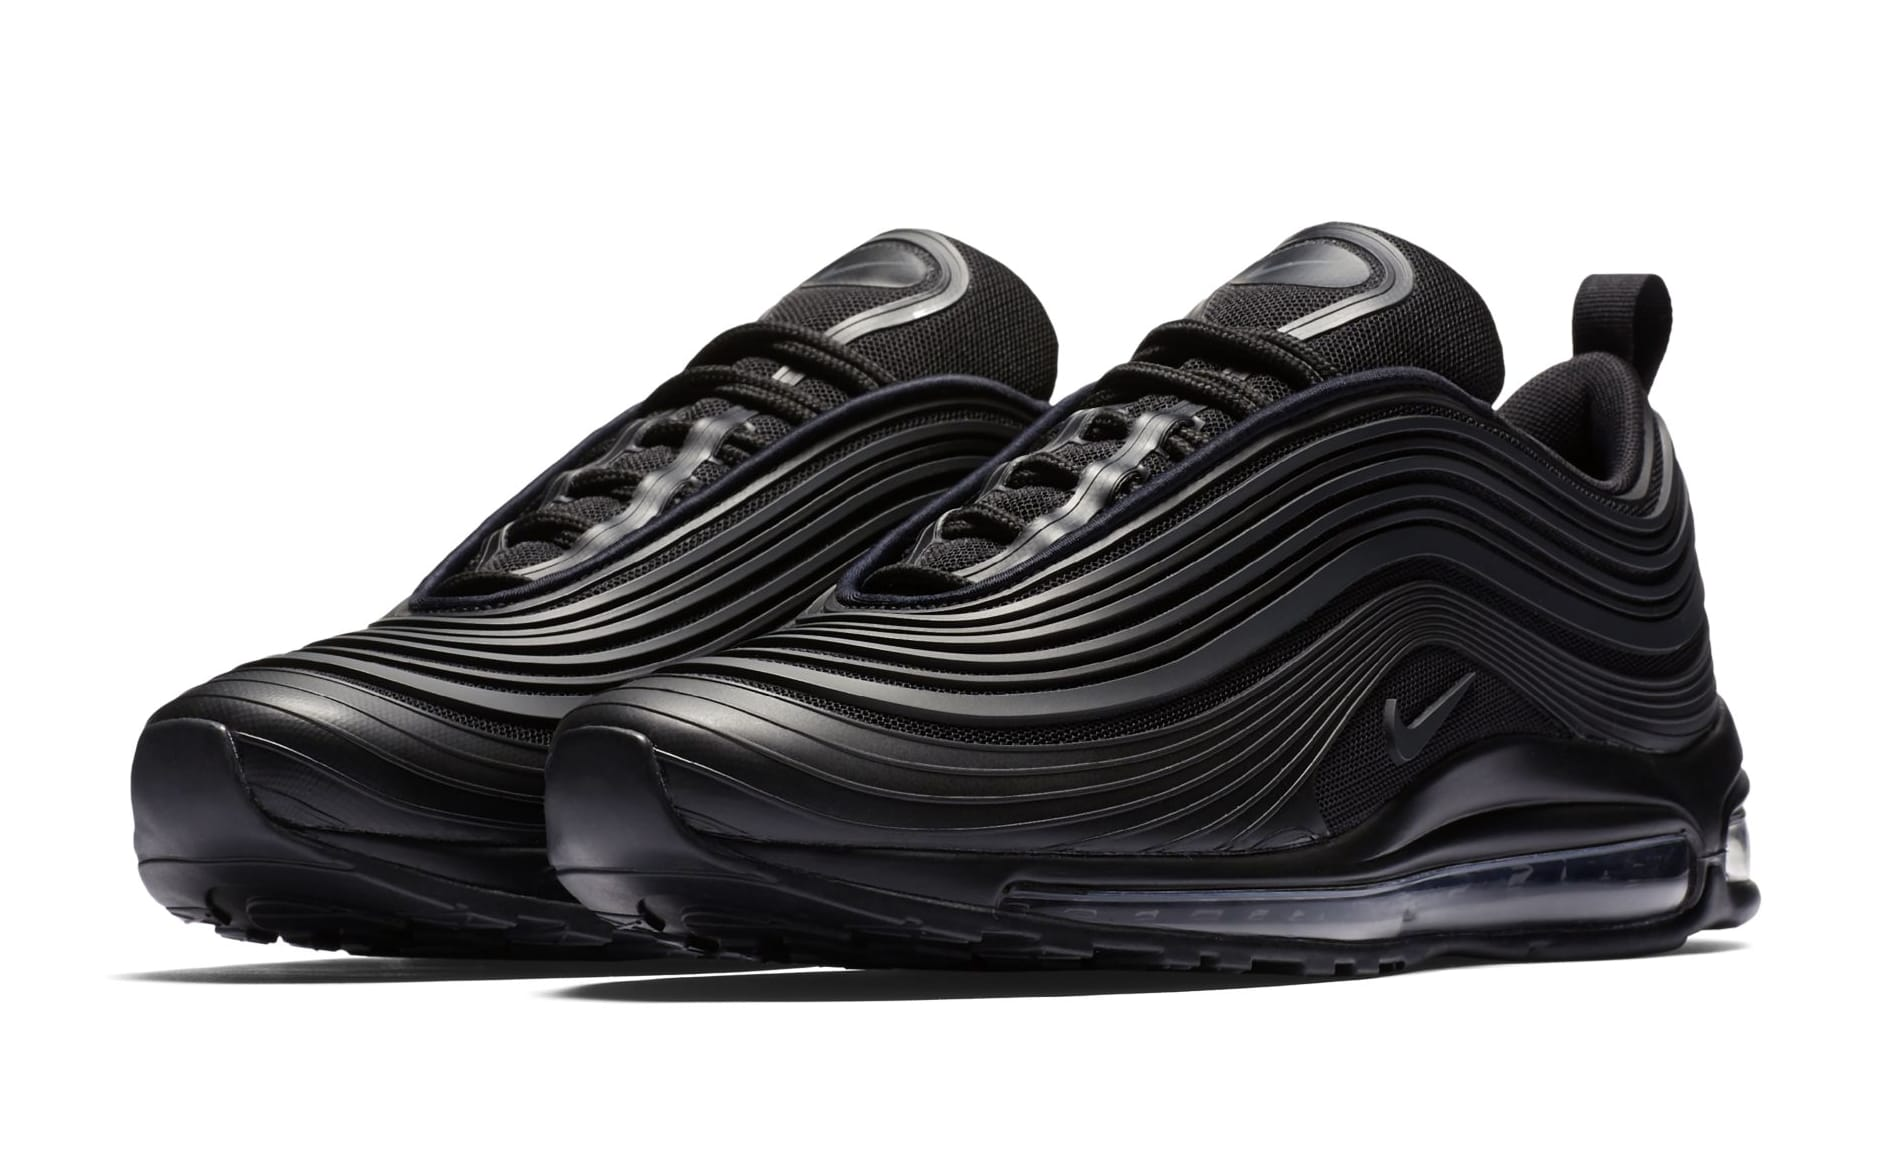 NIKE AIR MAX 97 ULTRA PREMIUM TRIPLE BLACKRED NIKE AIR MAX 97 ULTRA 17 PREMIUM